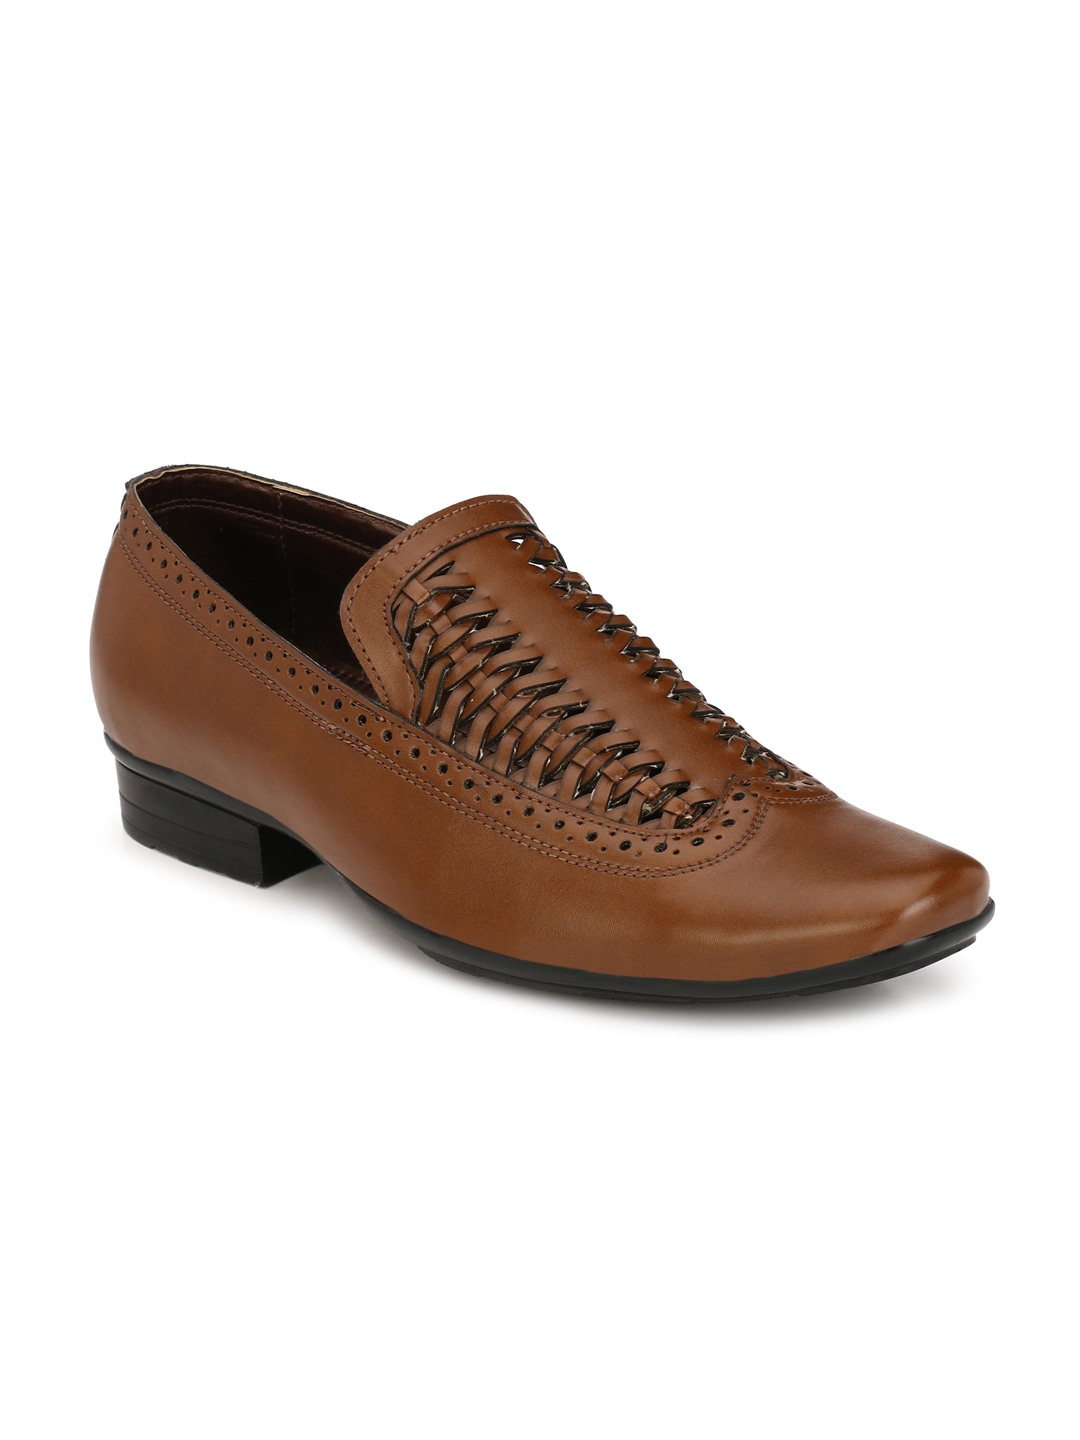 Sir Corbett Men Brown Semiformal Shoes image